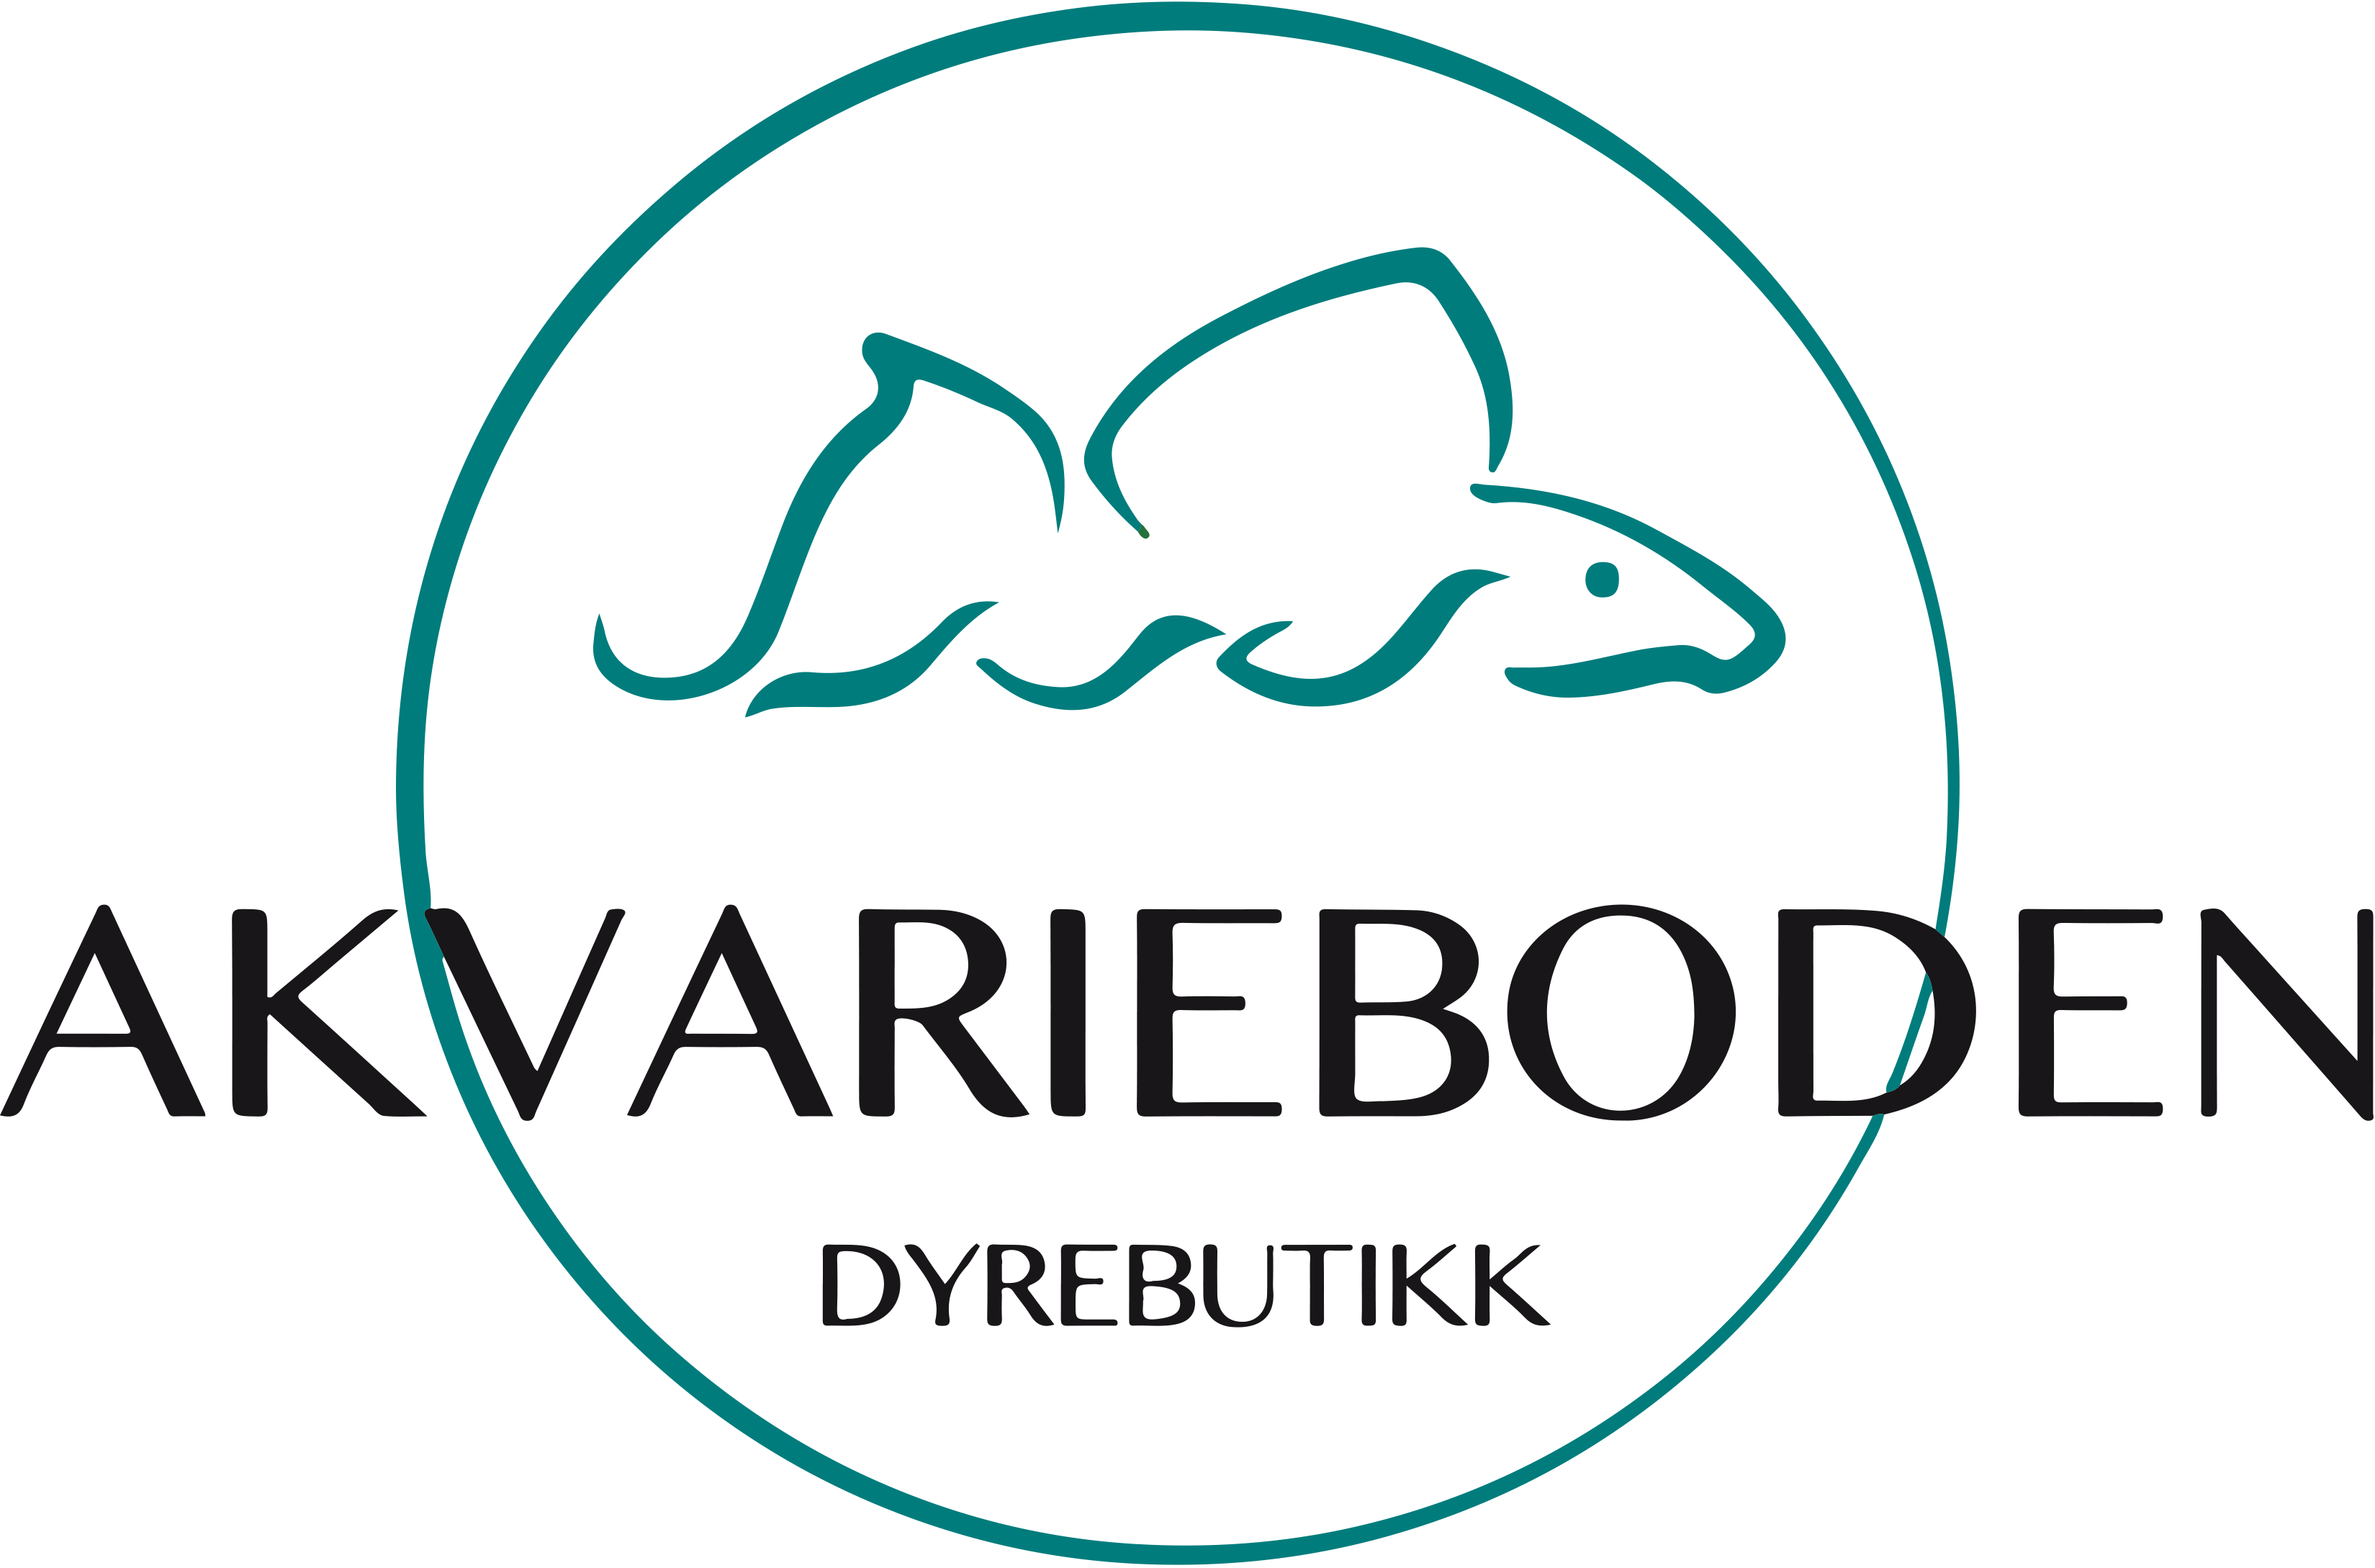 Akvarieboden As